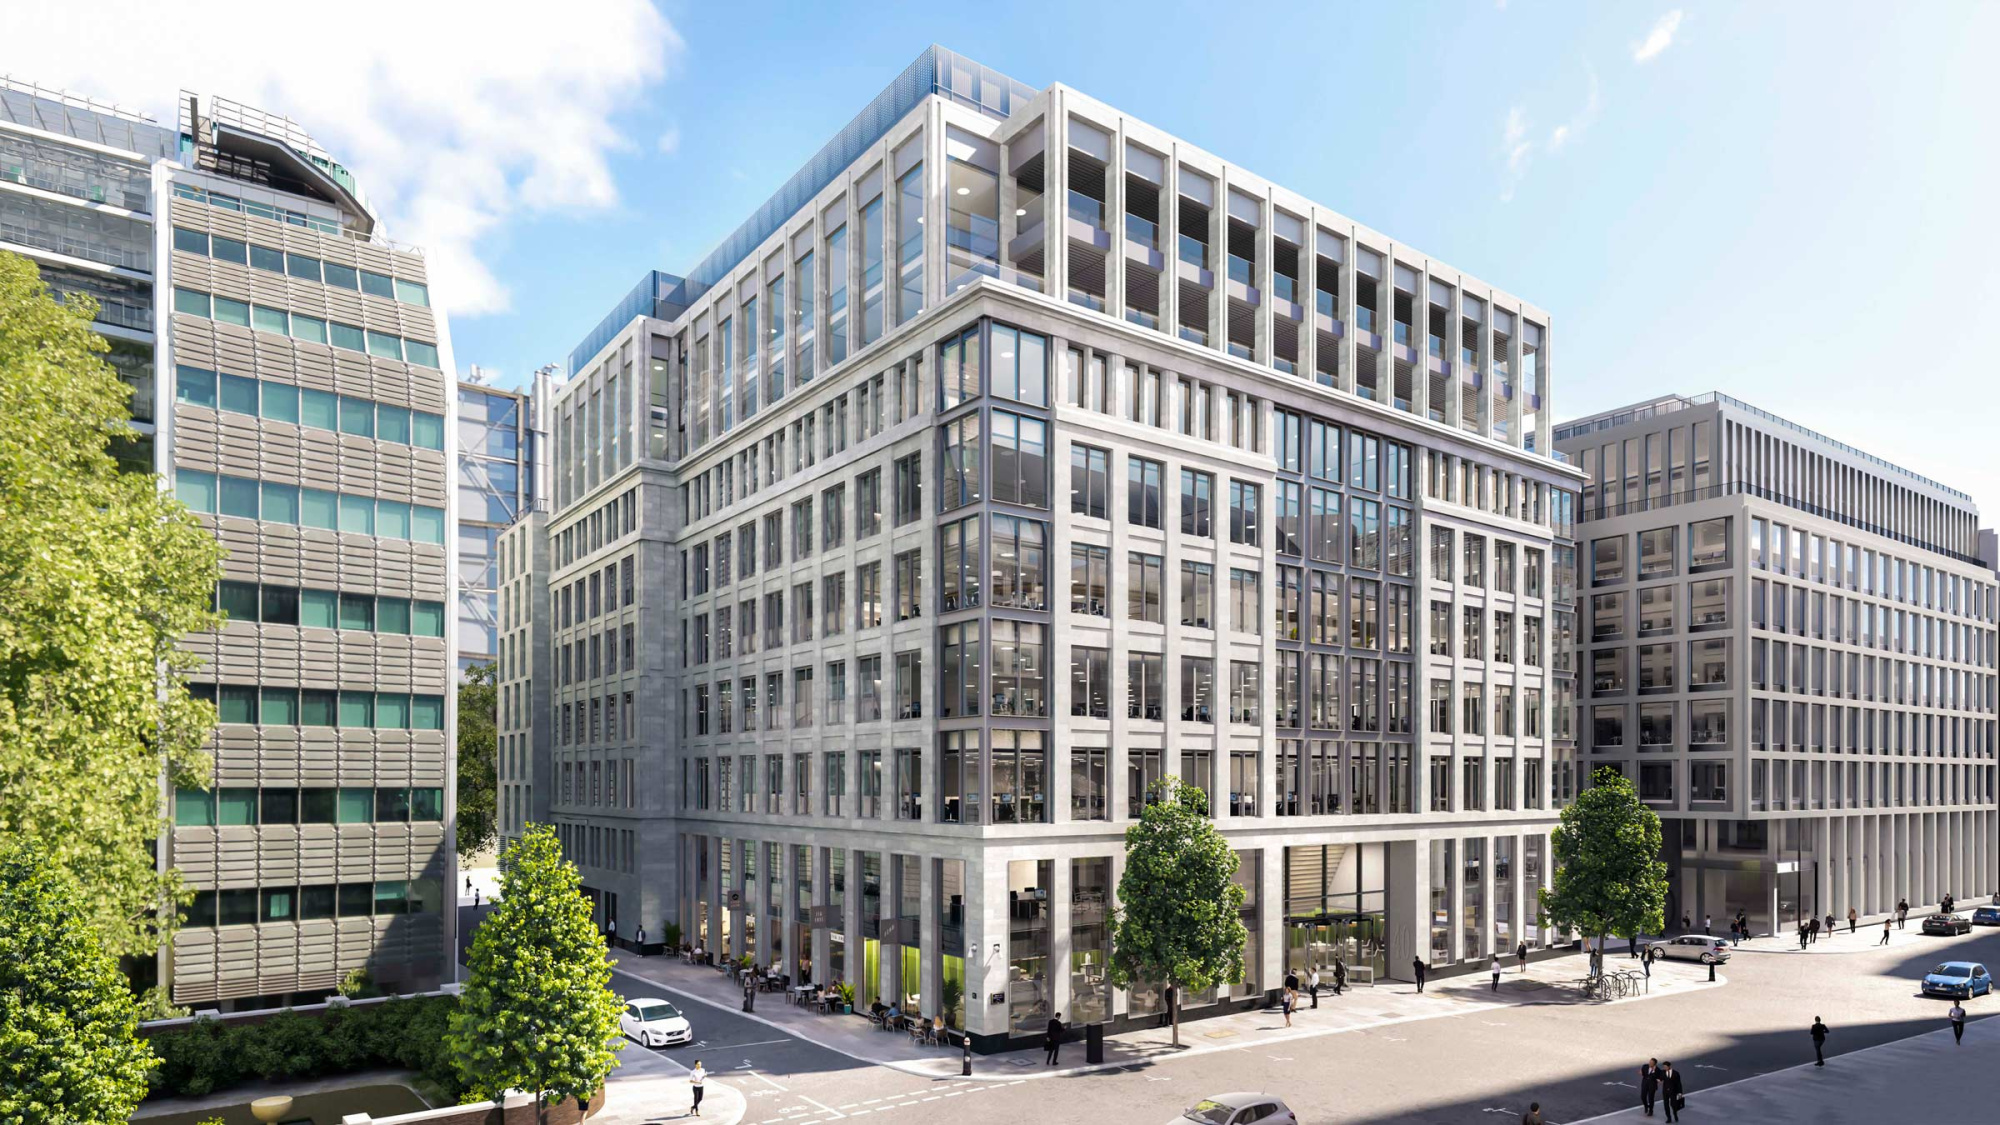 The thoroughly refurbished Gresham Street offices in the City of London.